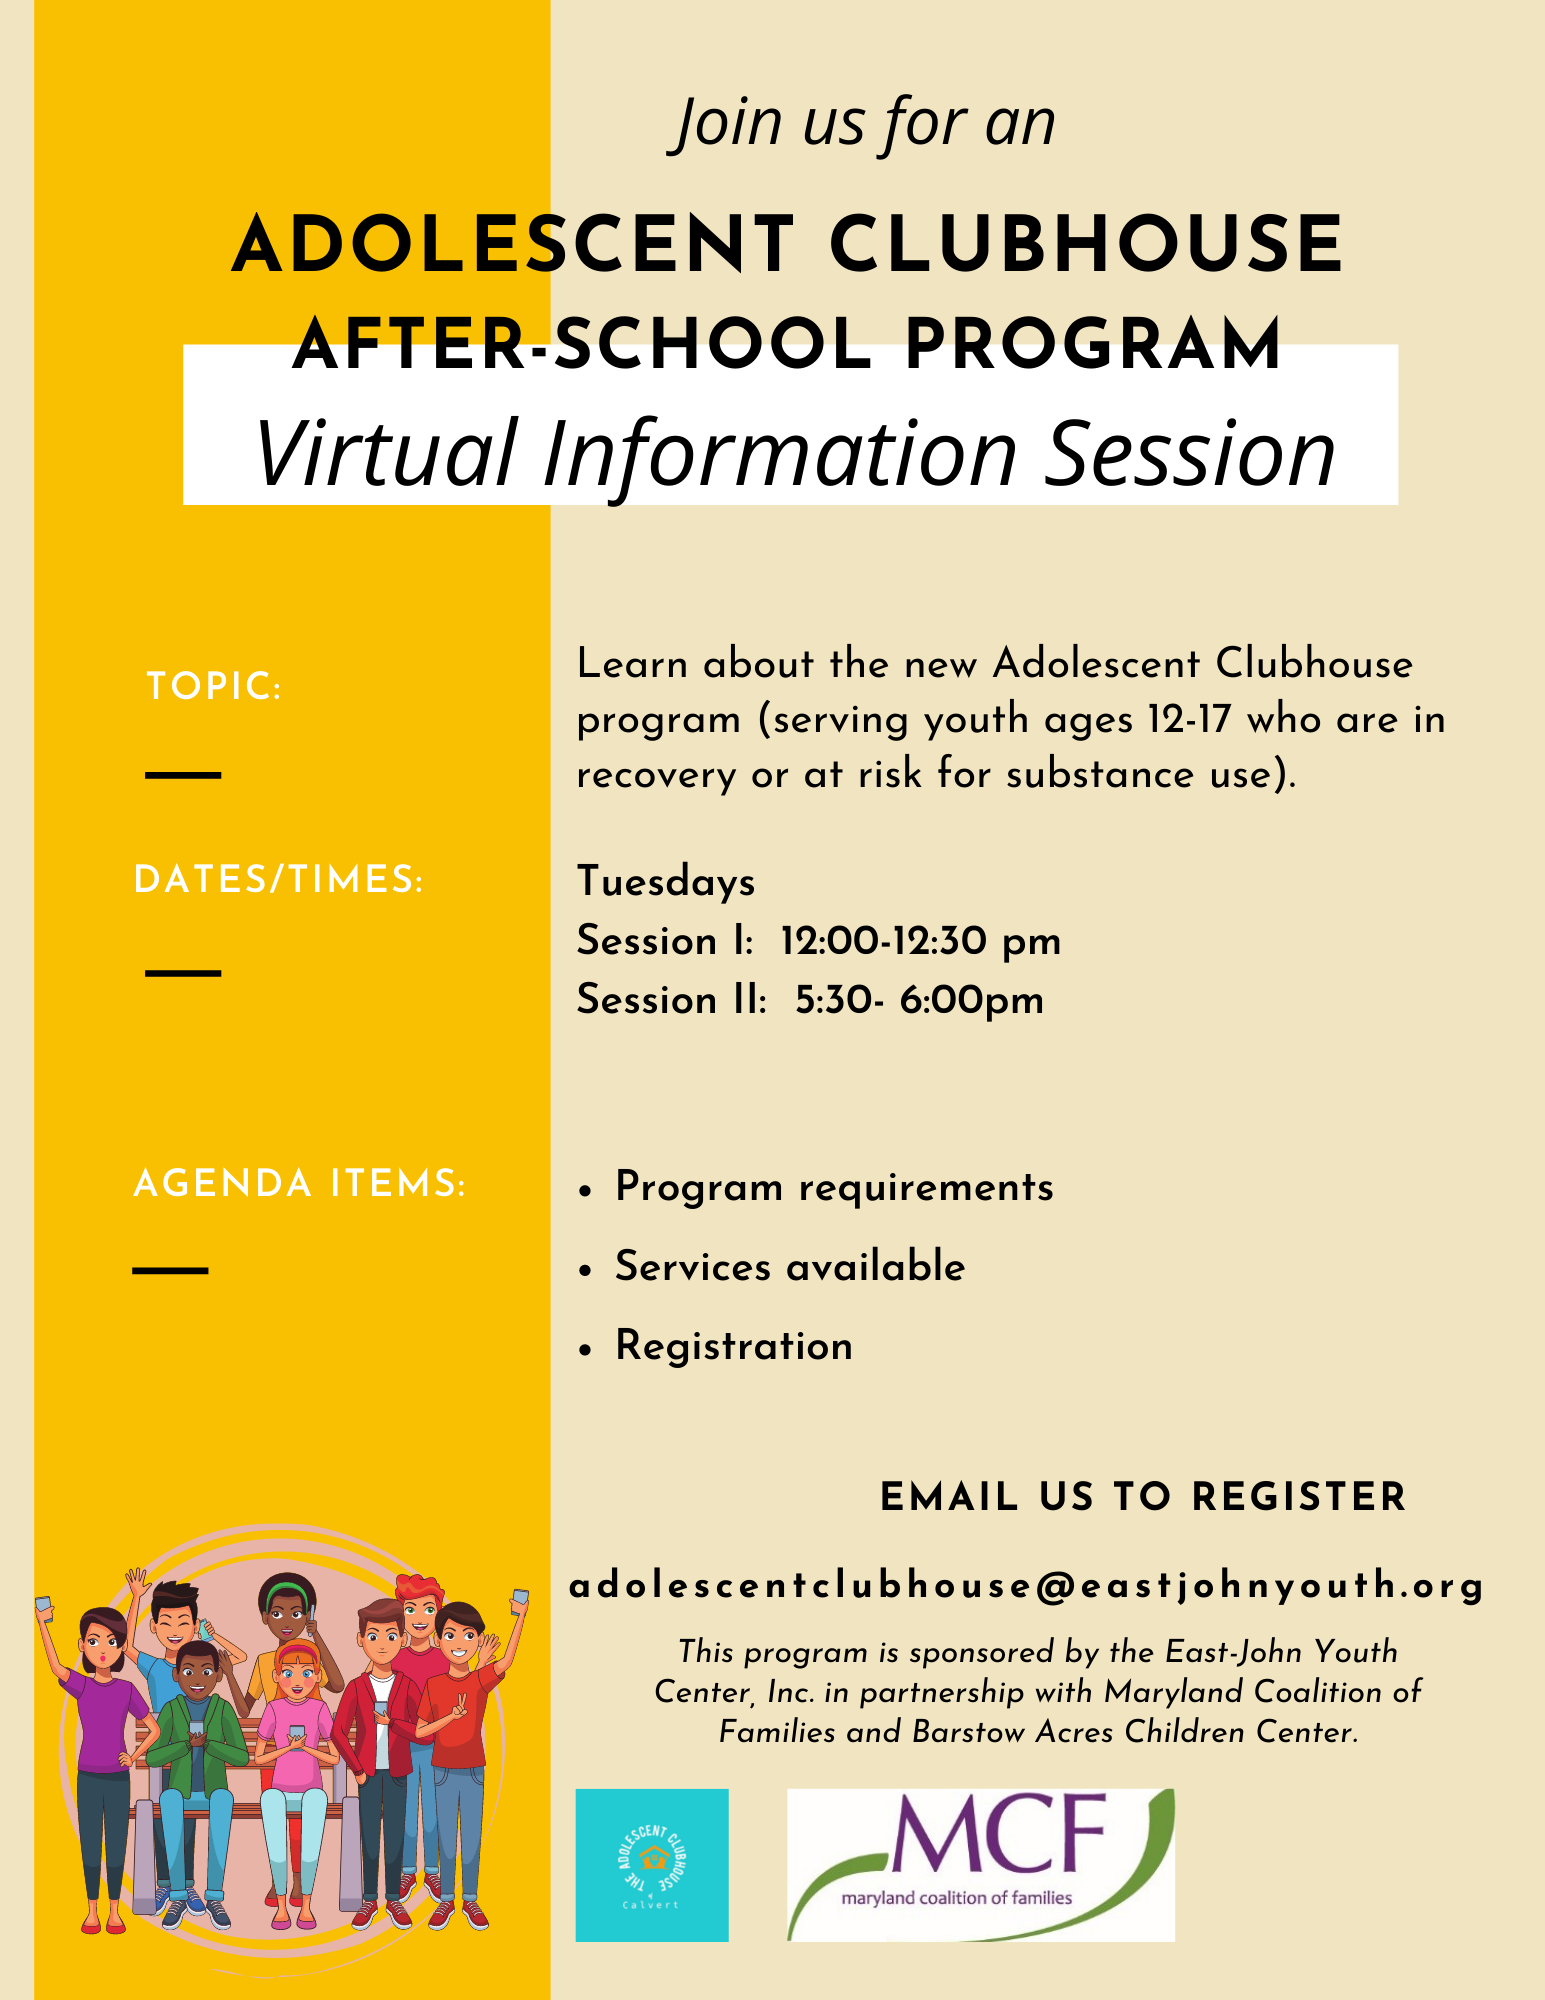 Adolescent Clubhouse Virtual Information Session